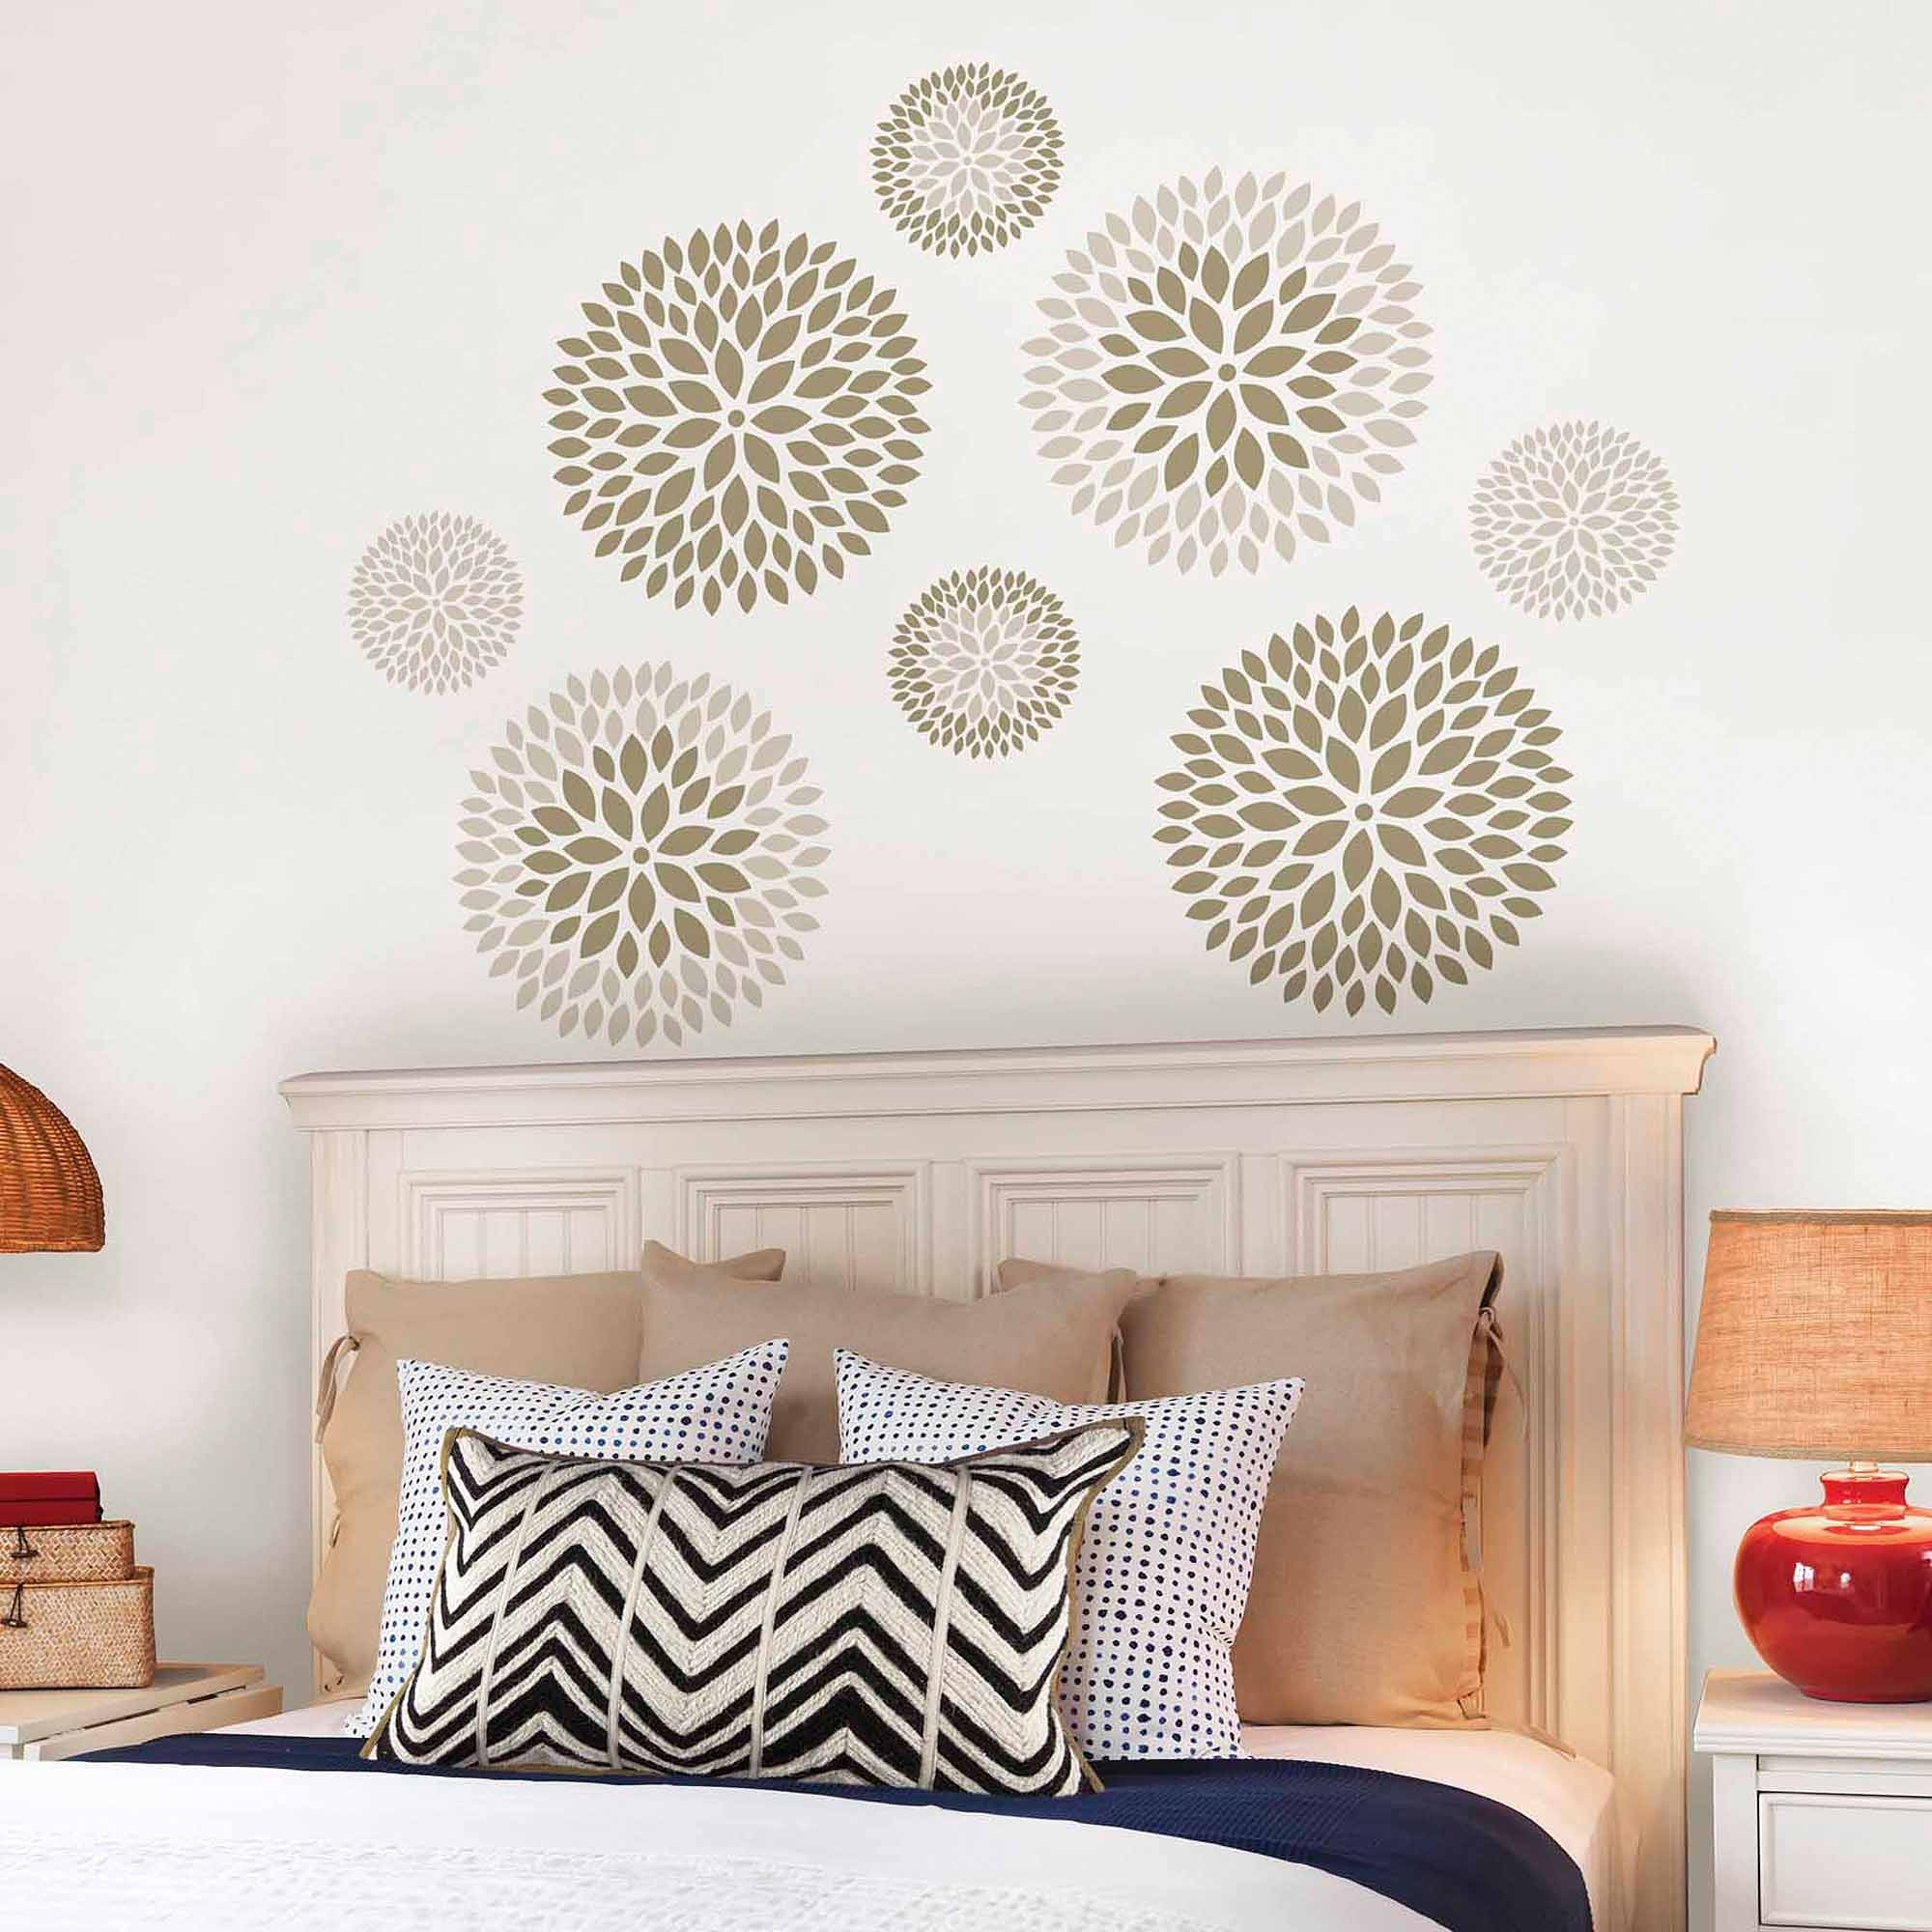 Wallpops Chrysanthemum Wall Art Decals Kit – Walmart Inside Most Recent Wall Art Decals (View 2 of 15)